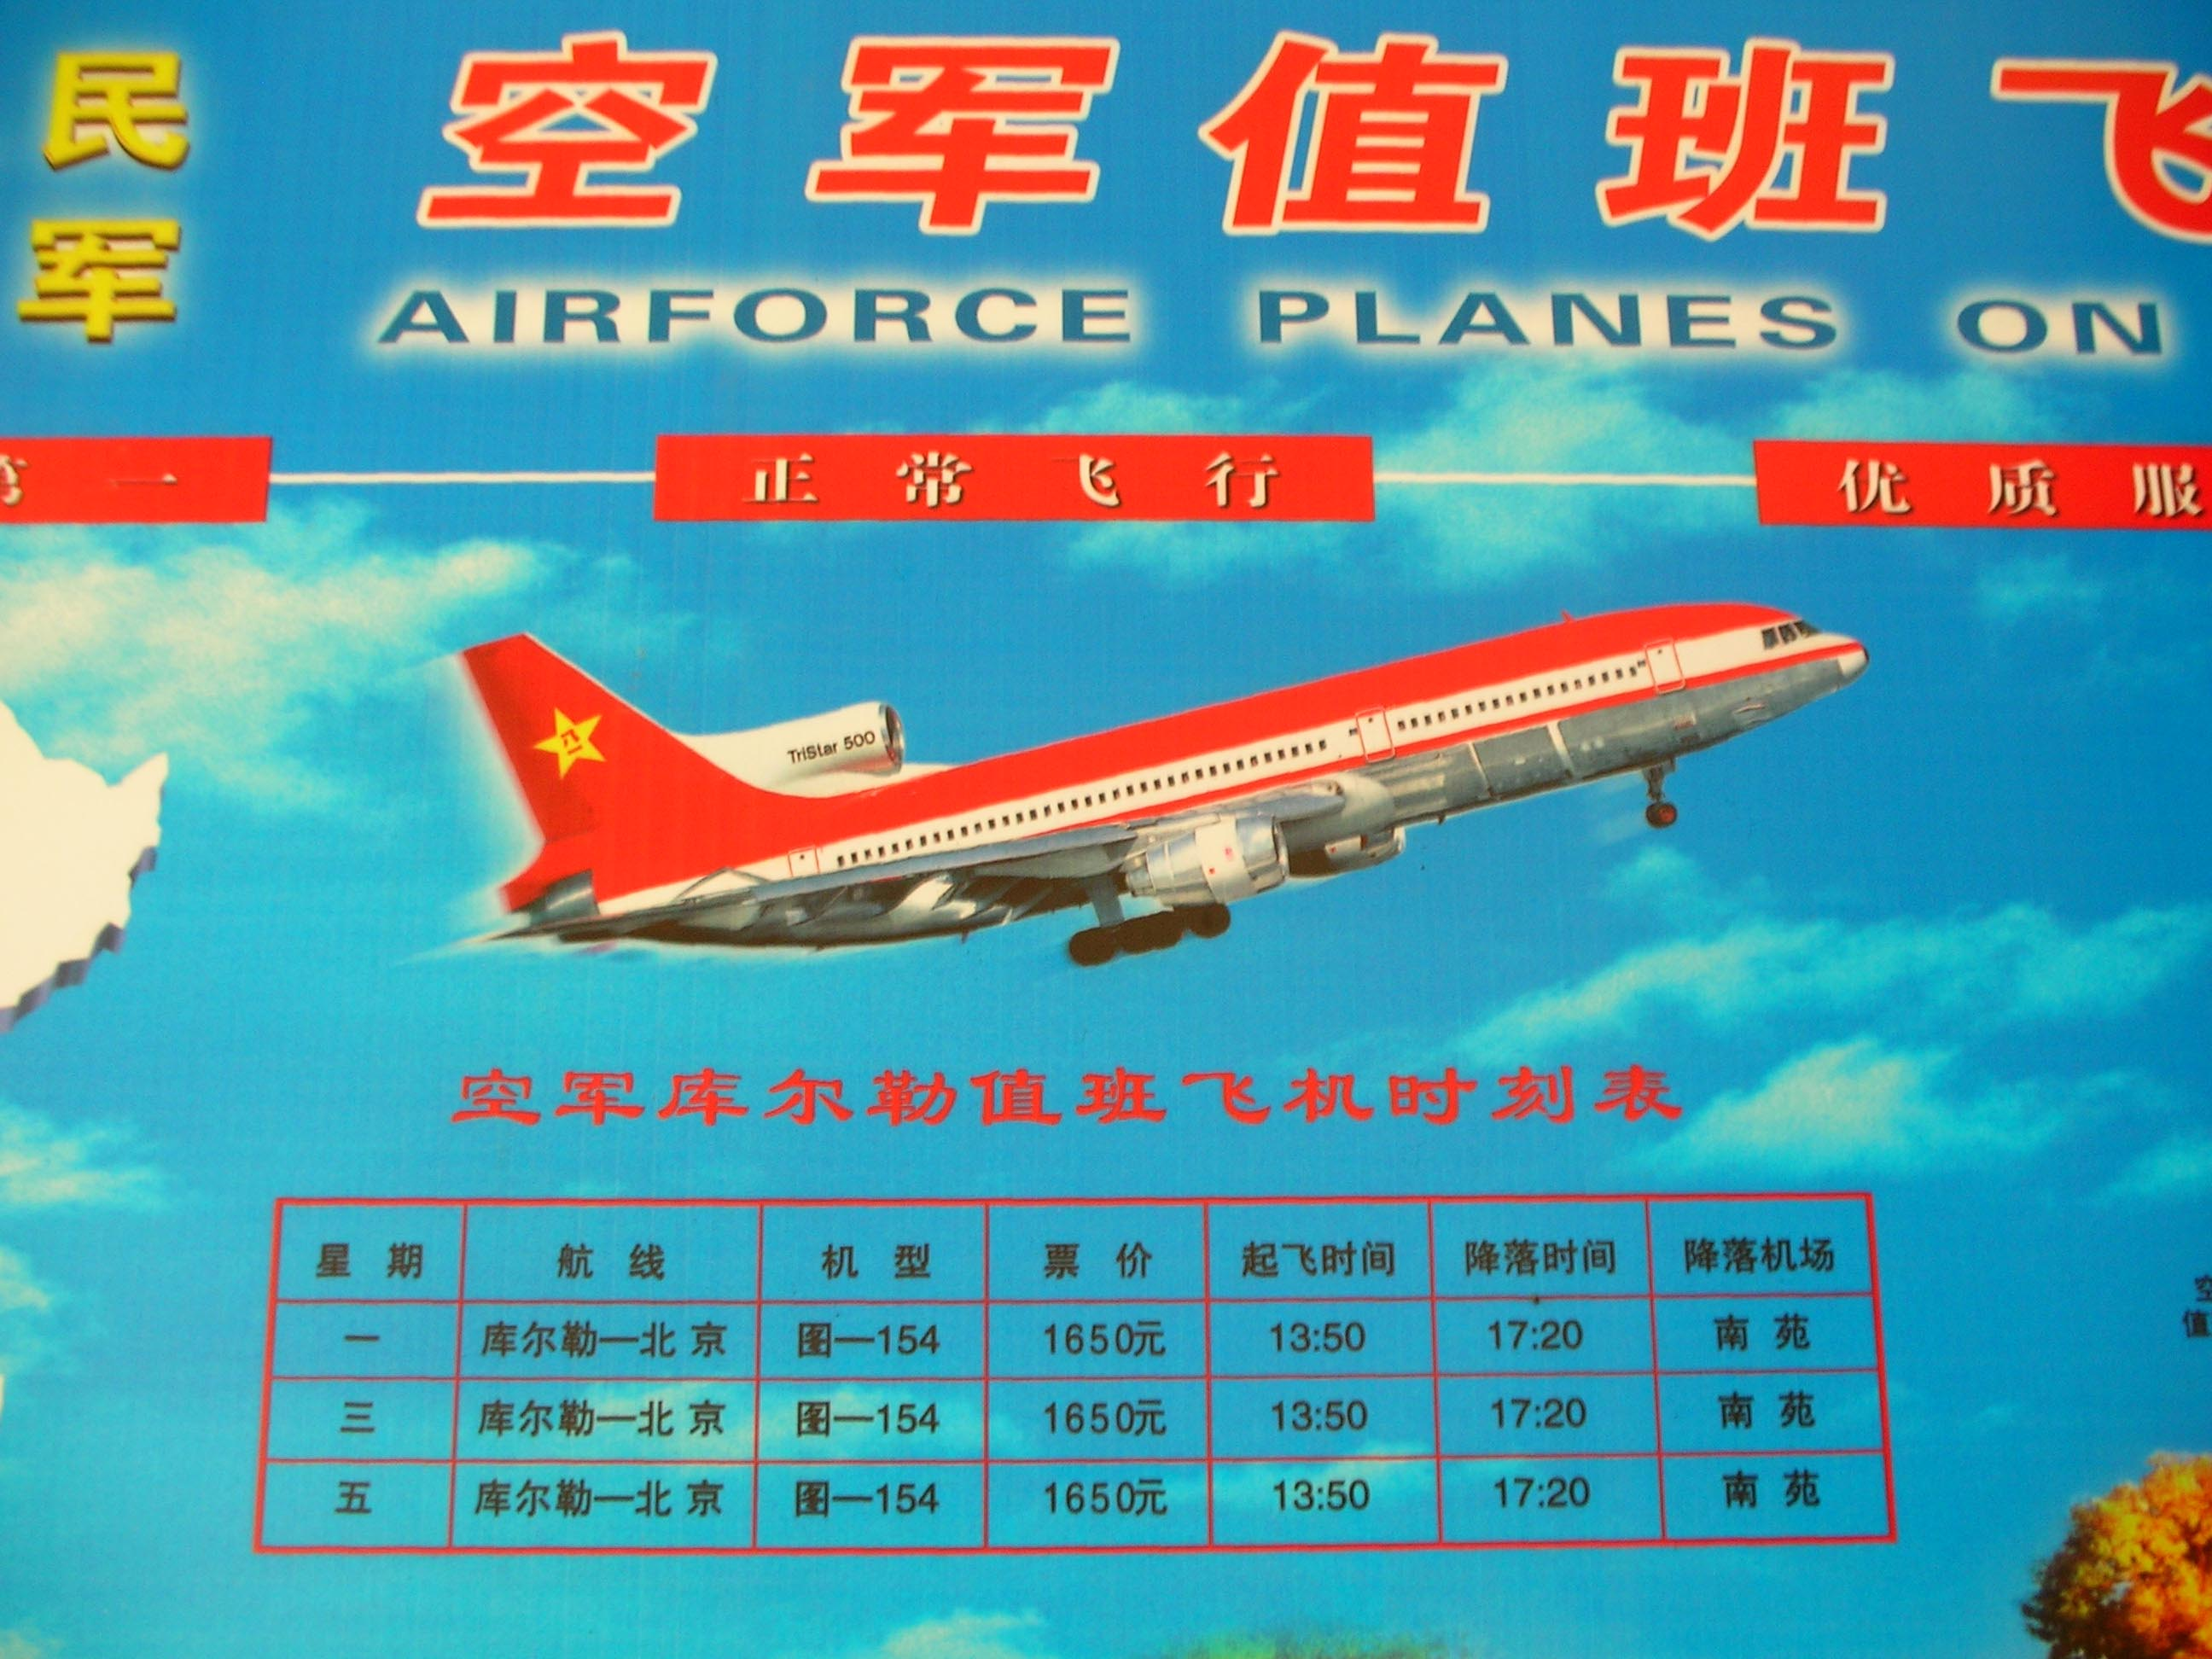 It turns out that you can get direct flights between Korla and Beijing. That is, if you're willing to fly China Airforce Airlines. (Yes, that airforce.)